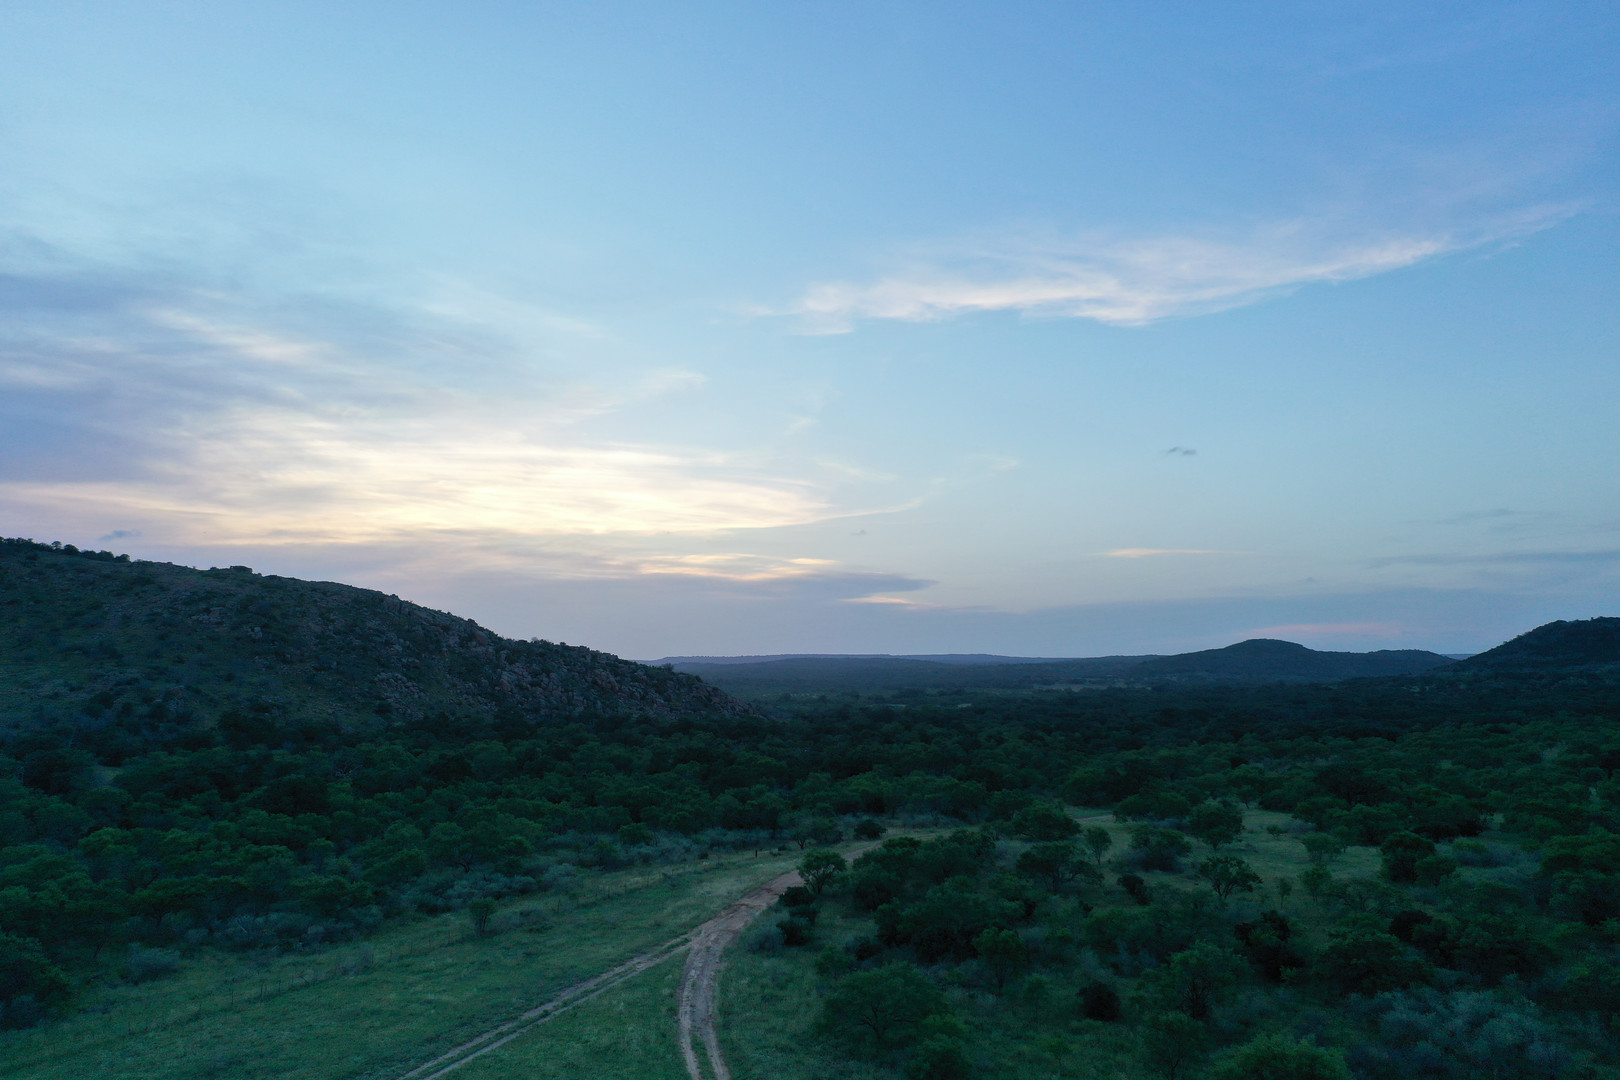 Sunset in the Hill Country